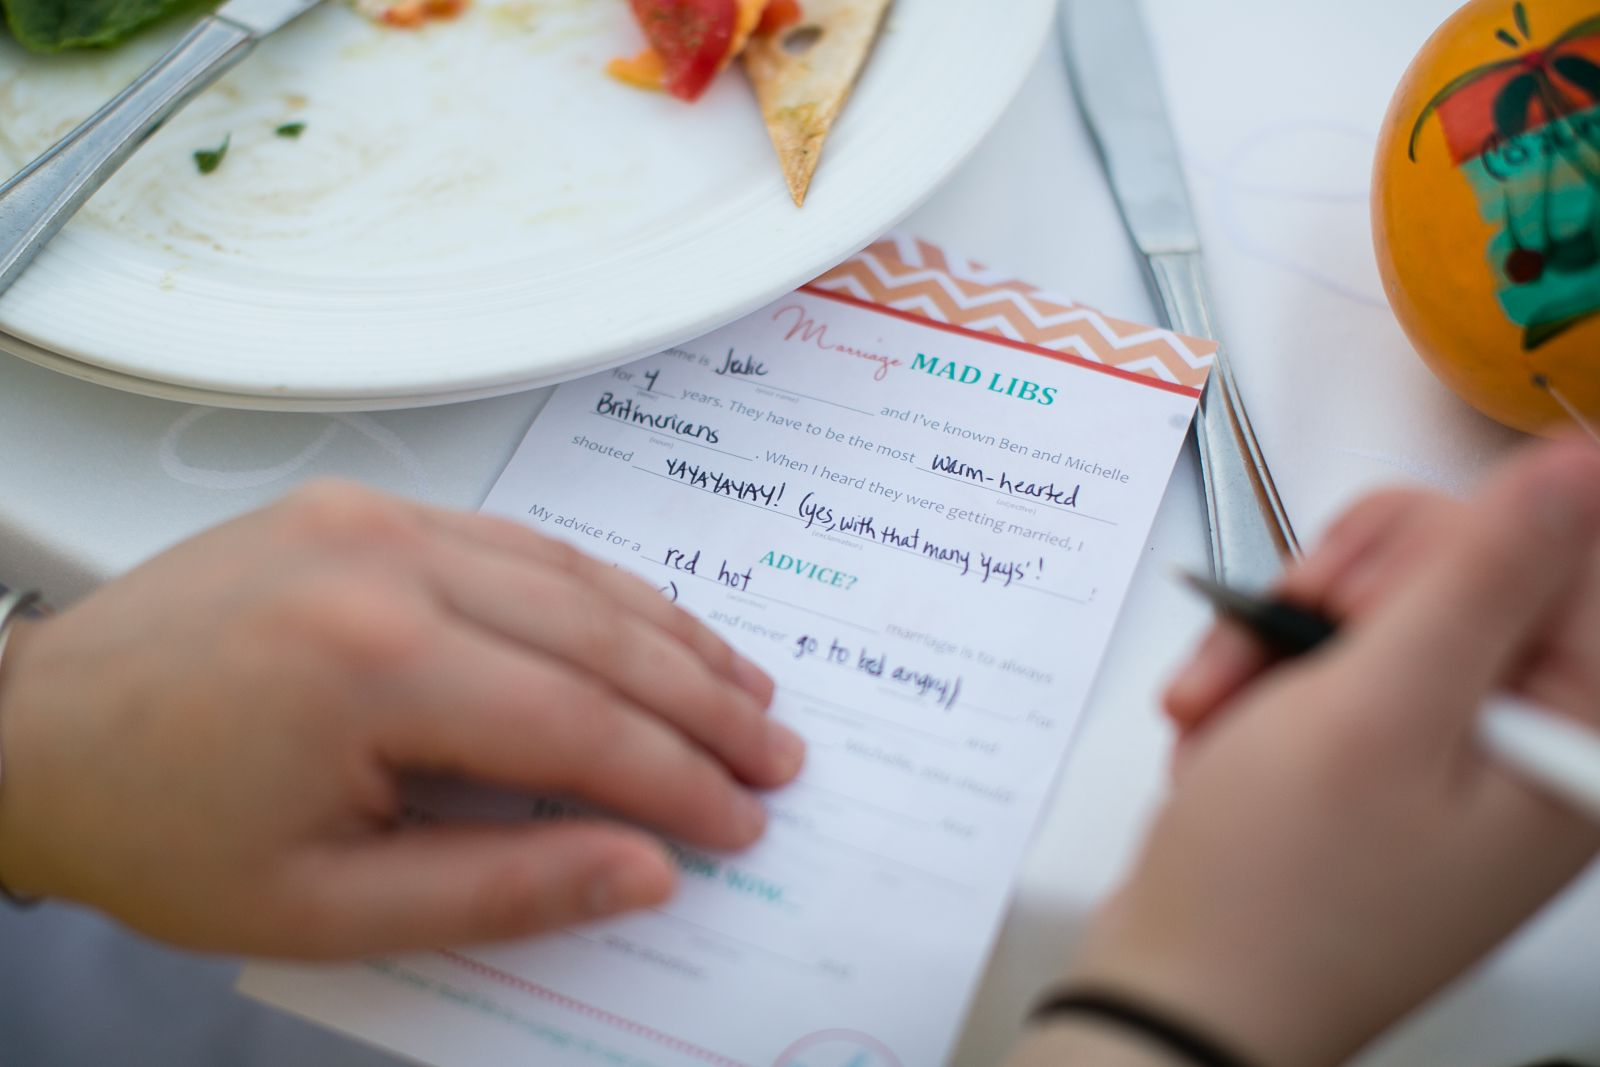 We printed out Mad Libs for guests to fill out - I found the template online and just customized in Microsoft Word.